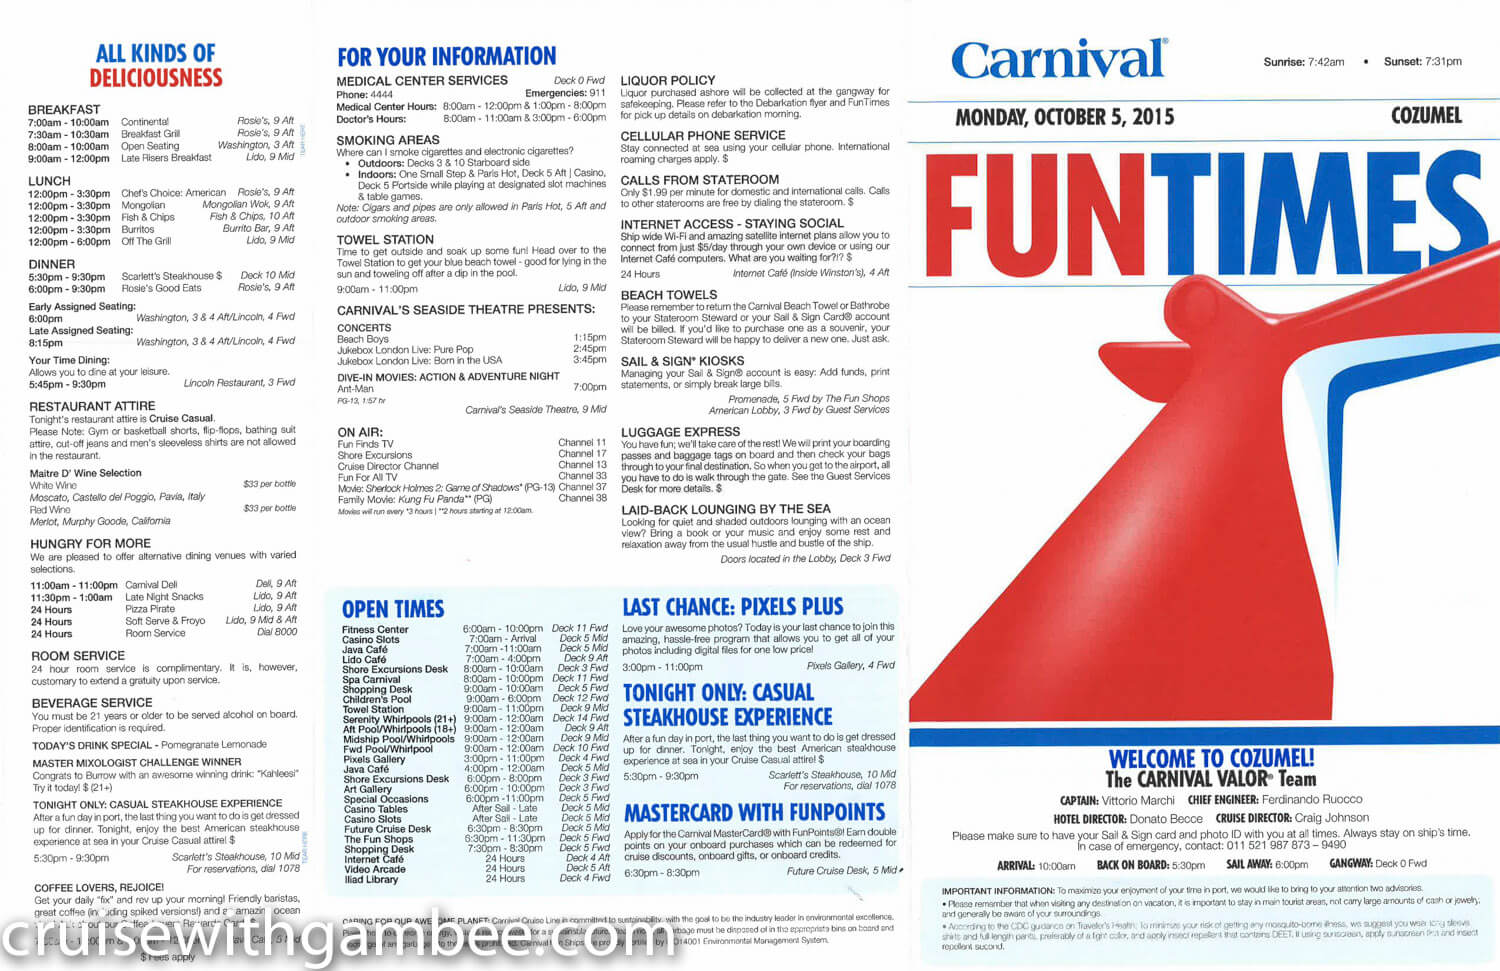 Carnival Valor Fun Times Western Dailies Cruise With Gambee